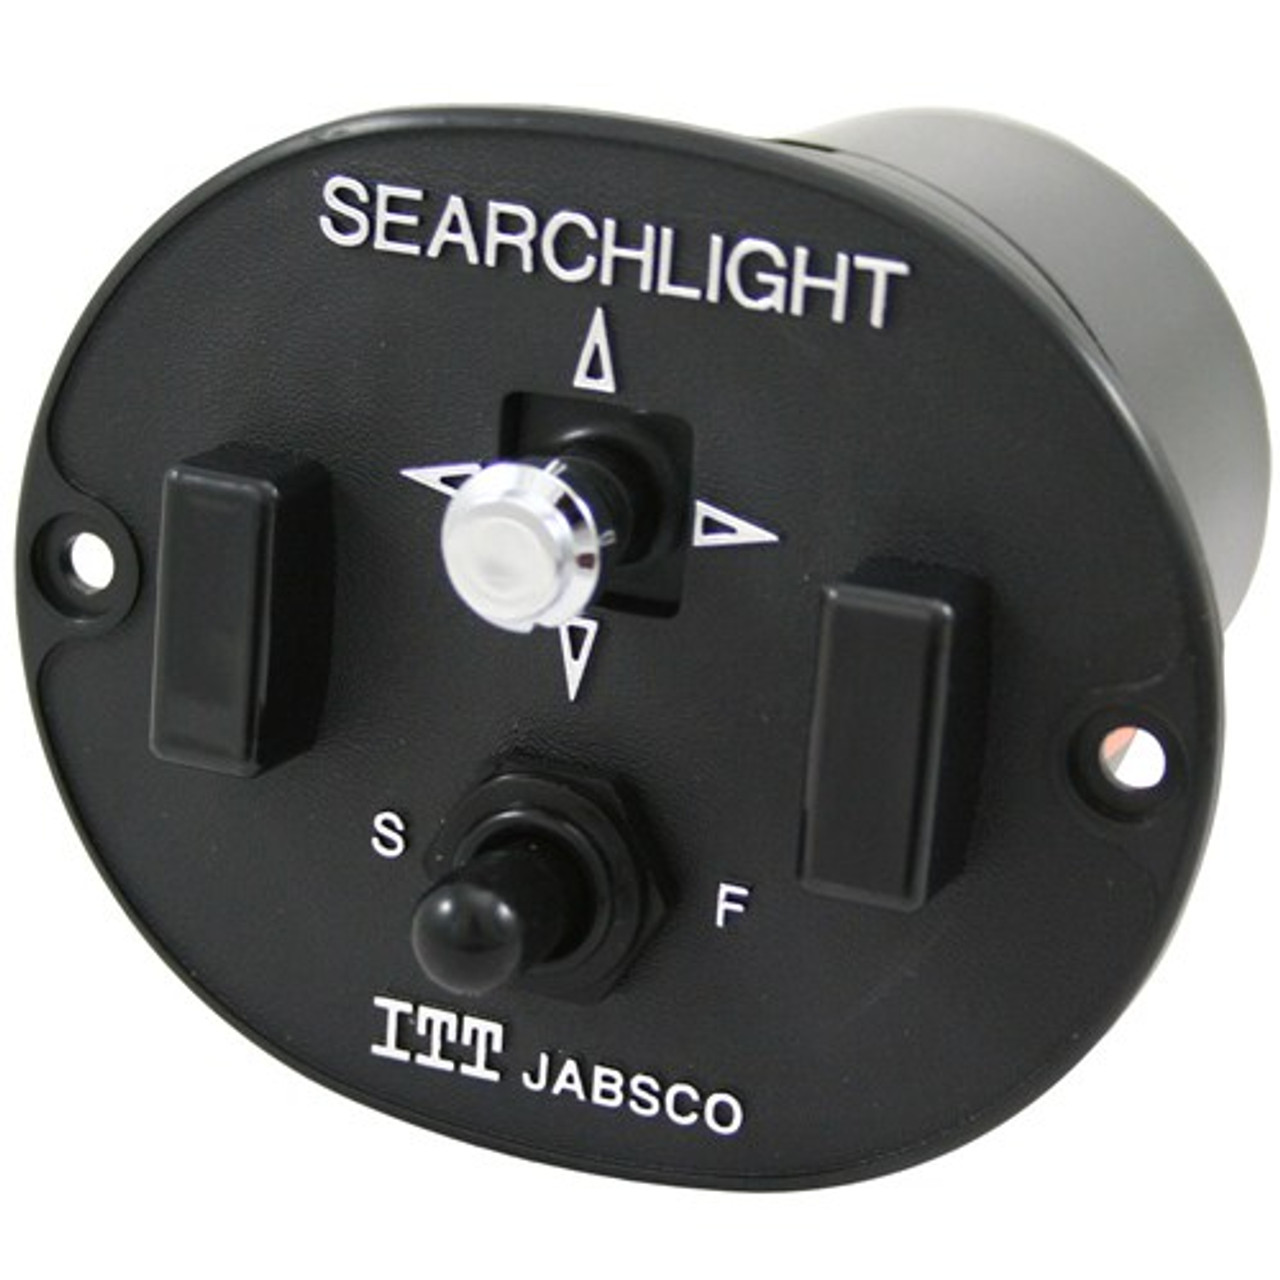 J65-132 Jabsco 60070-0000: Control Panel Searchlights 24V